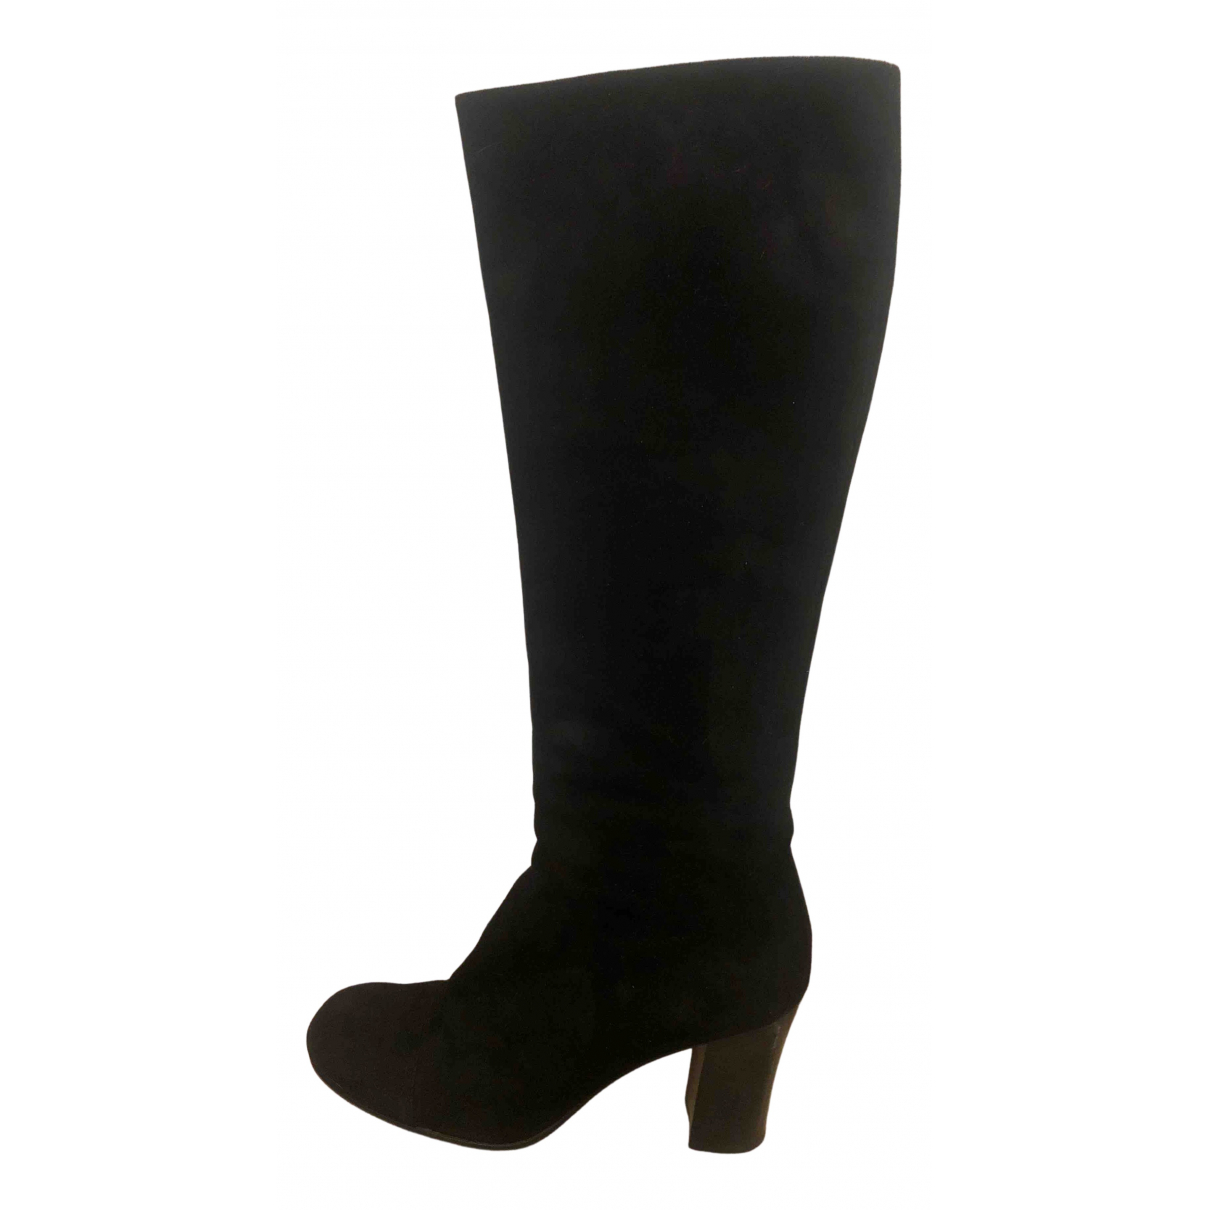 Prada N Black Suede Ankle boots for Women 38.5 EU